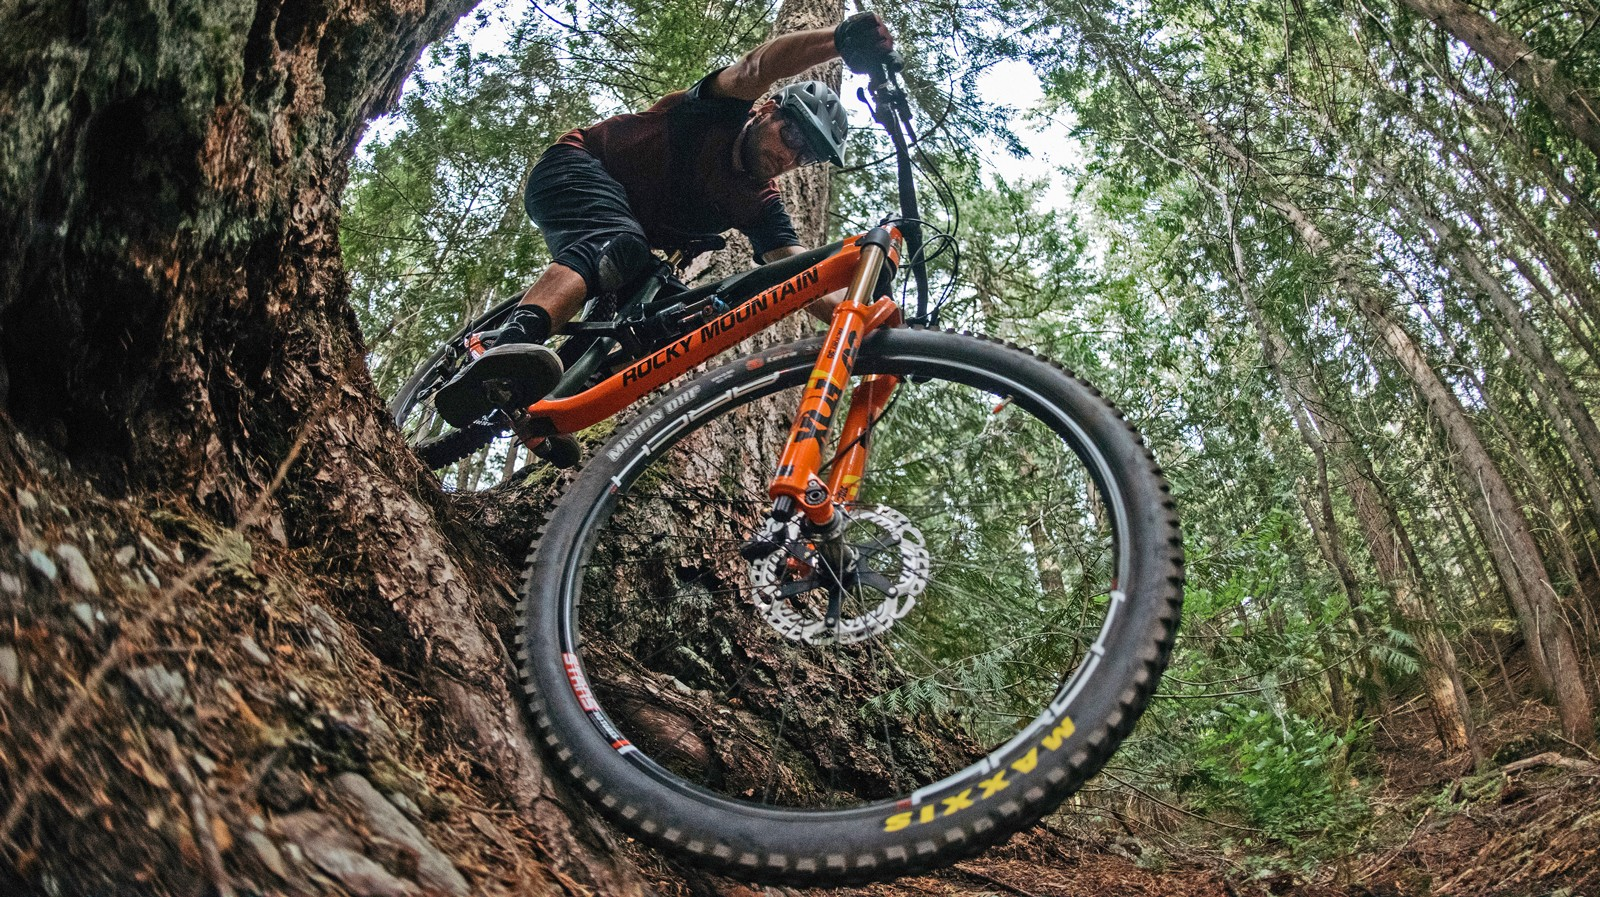 Rocky Mountain states the new Instincts are compatible with wide tread 29er and 27.5+ tires